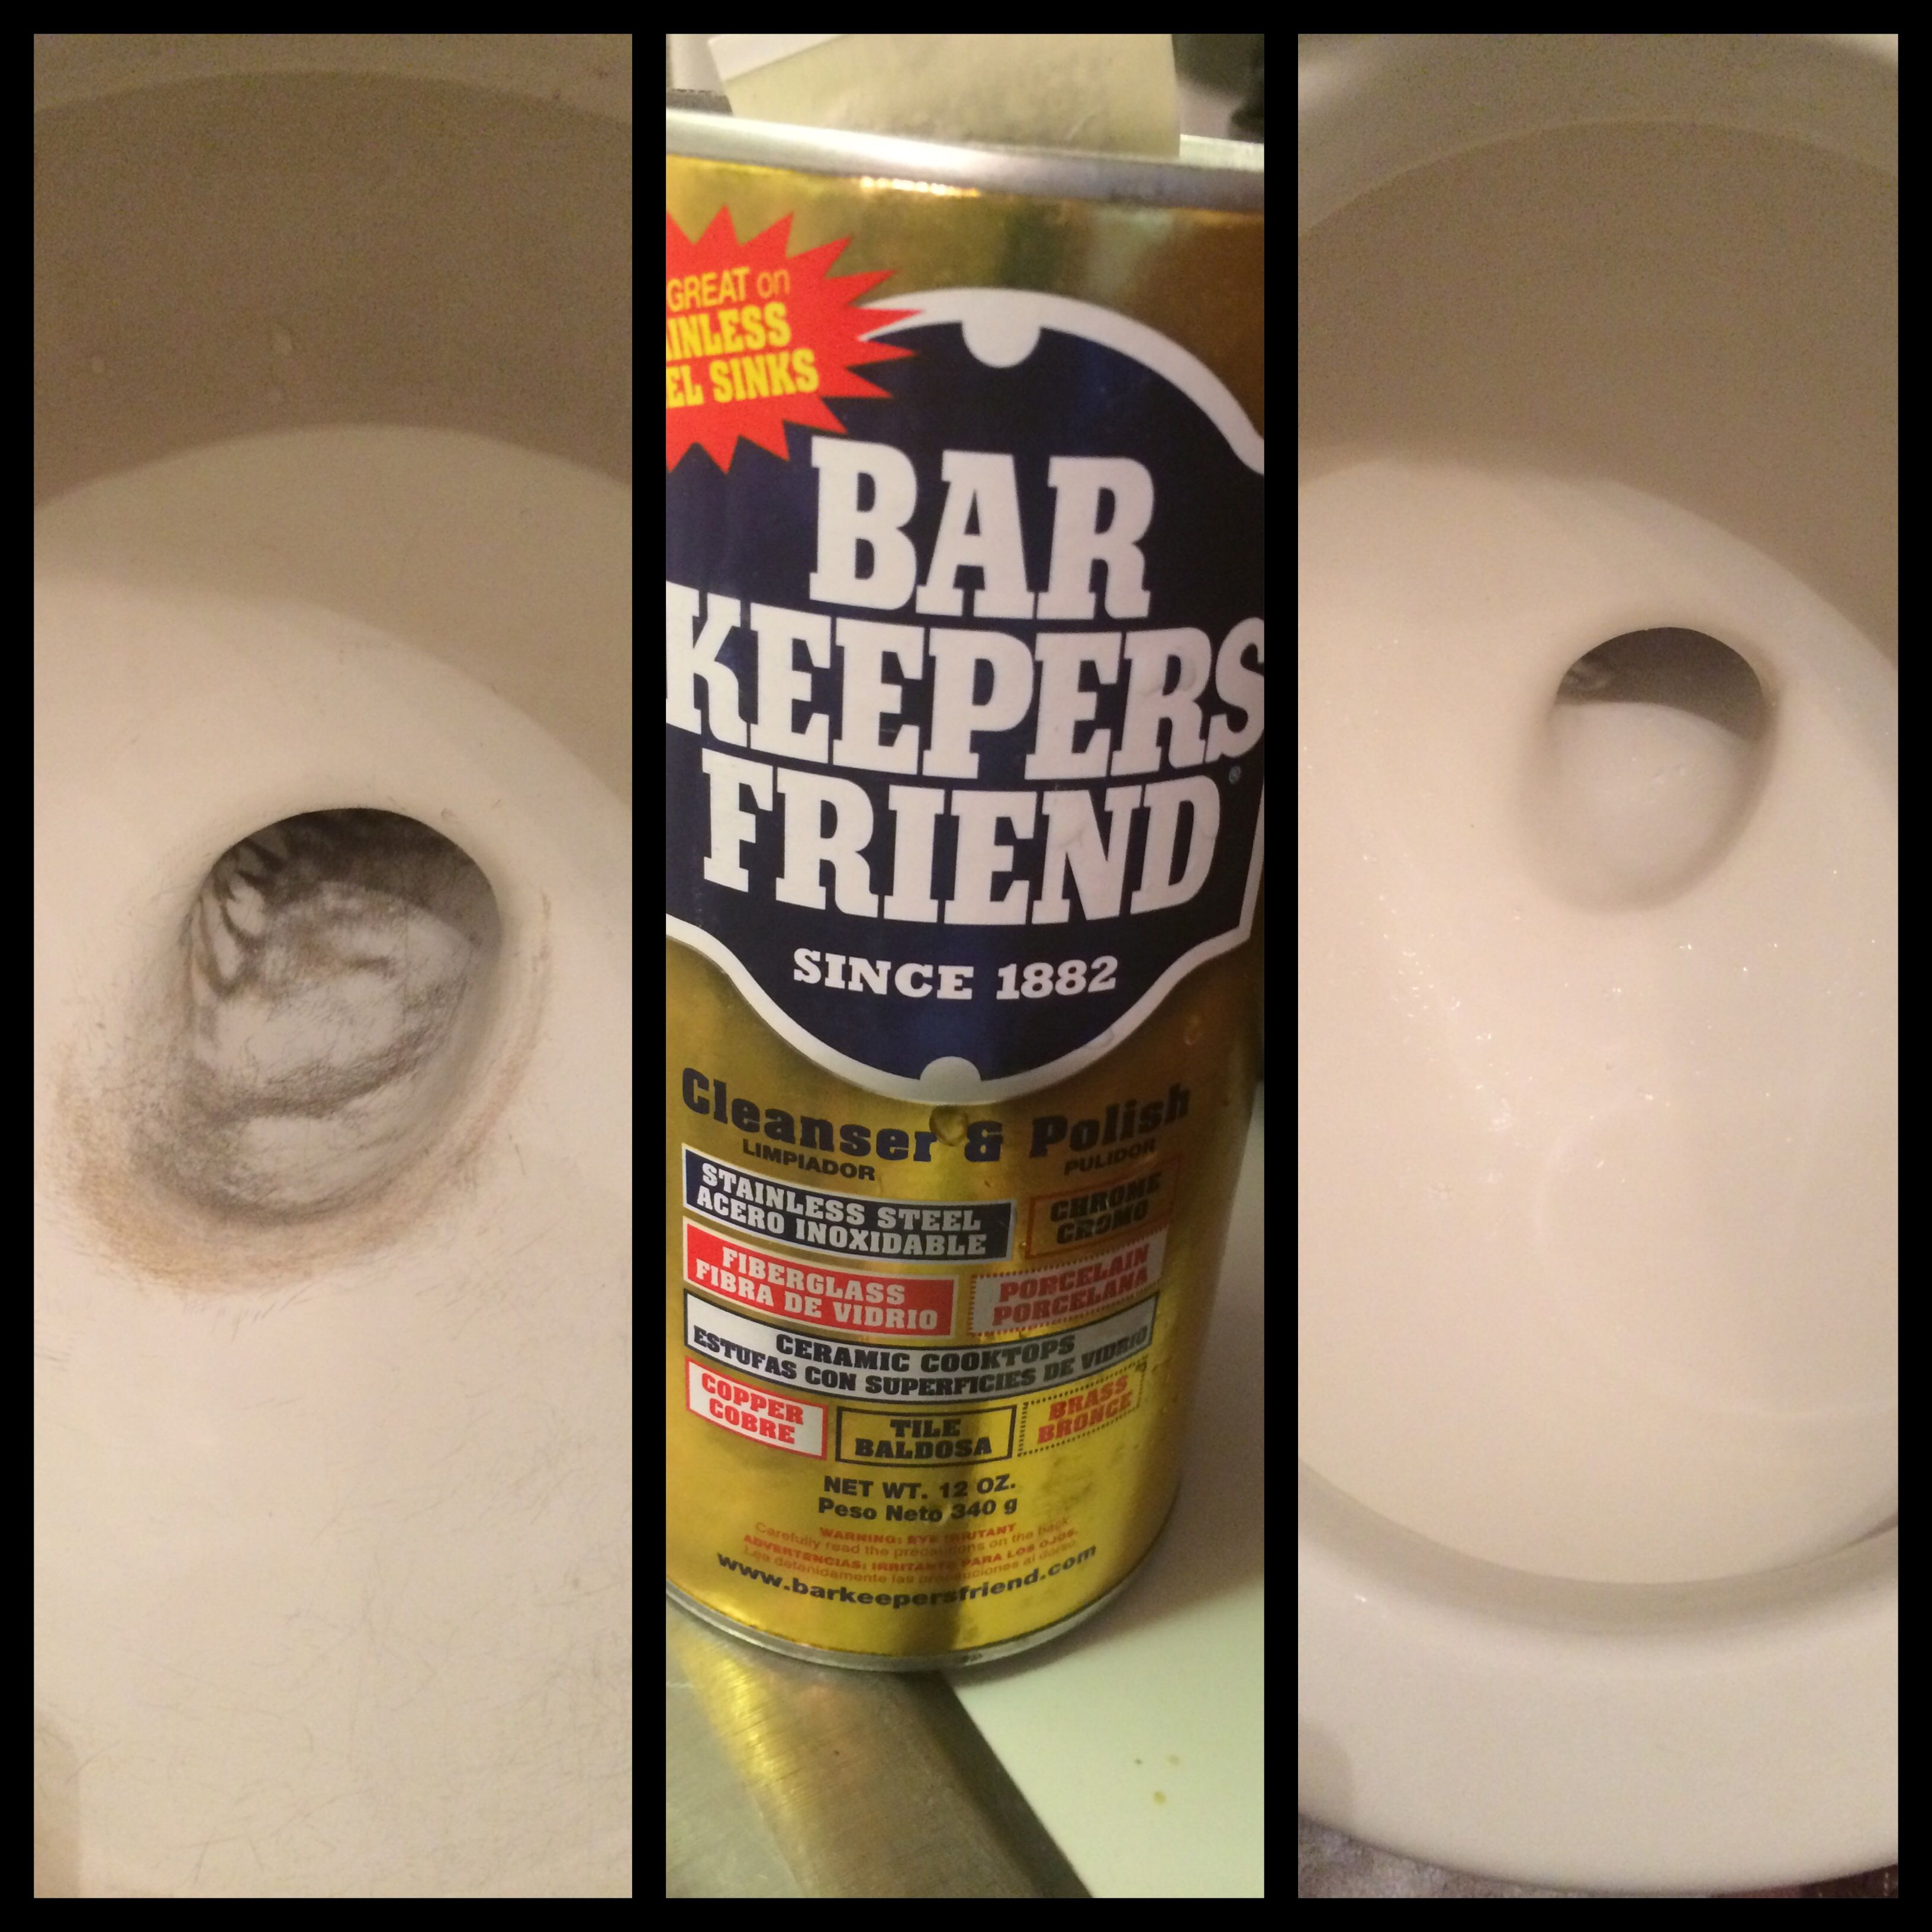 remove scratches in toilet from the ill advised snake with bar keepers friend p s it 39 s better. Black Bedroom Furniture Sets. Home Design Ideas